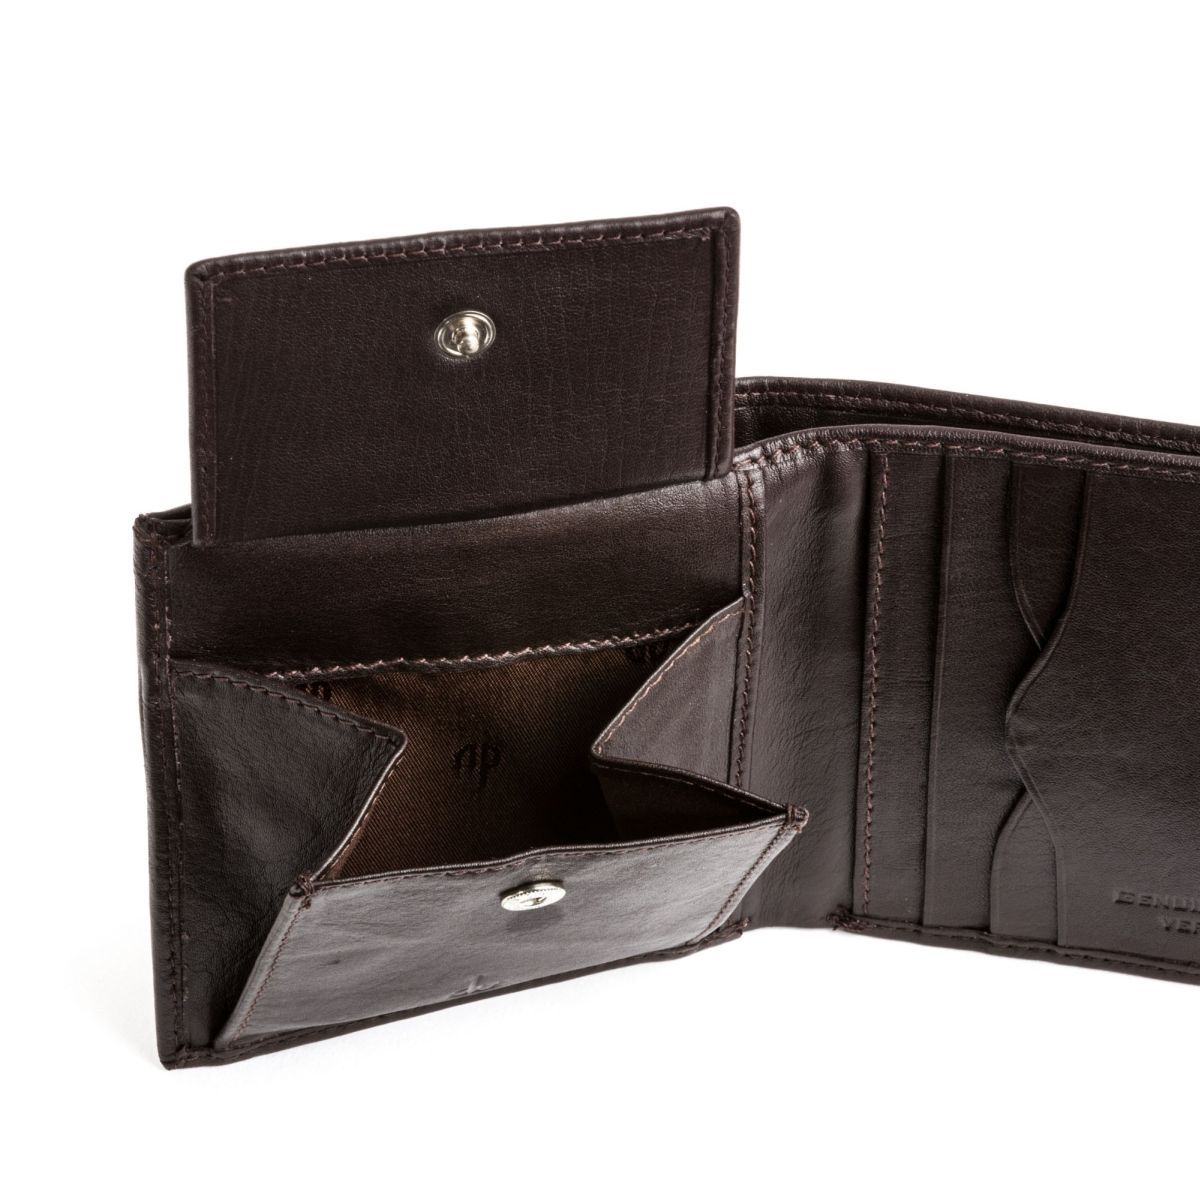 dv Men's Leather Wallet With Snap Closure - Dark Brown